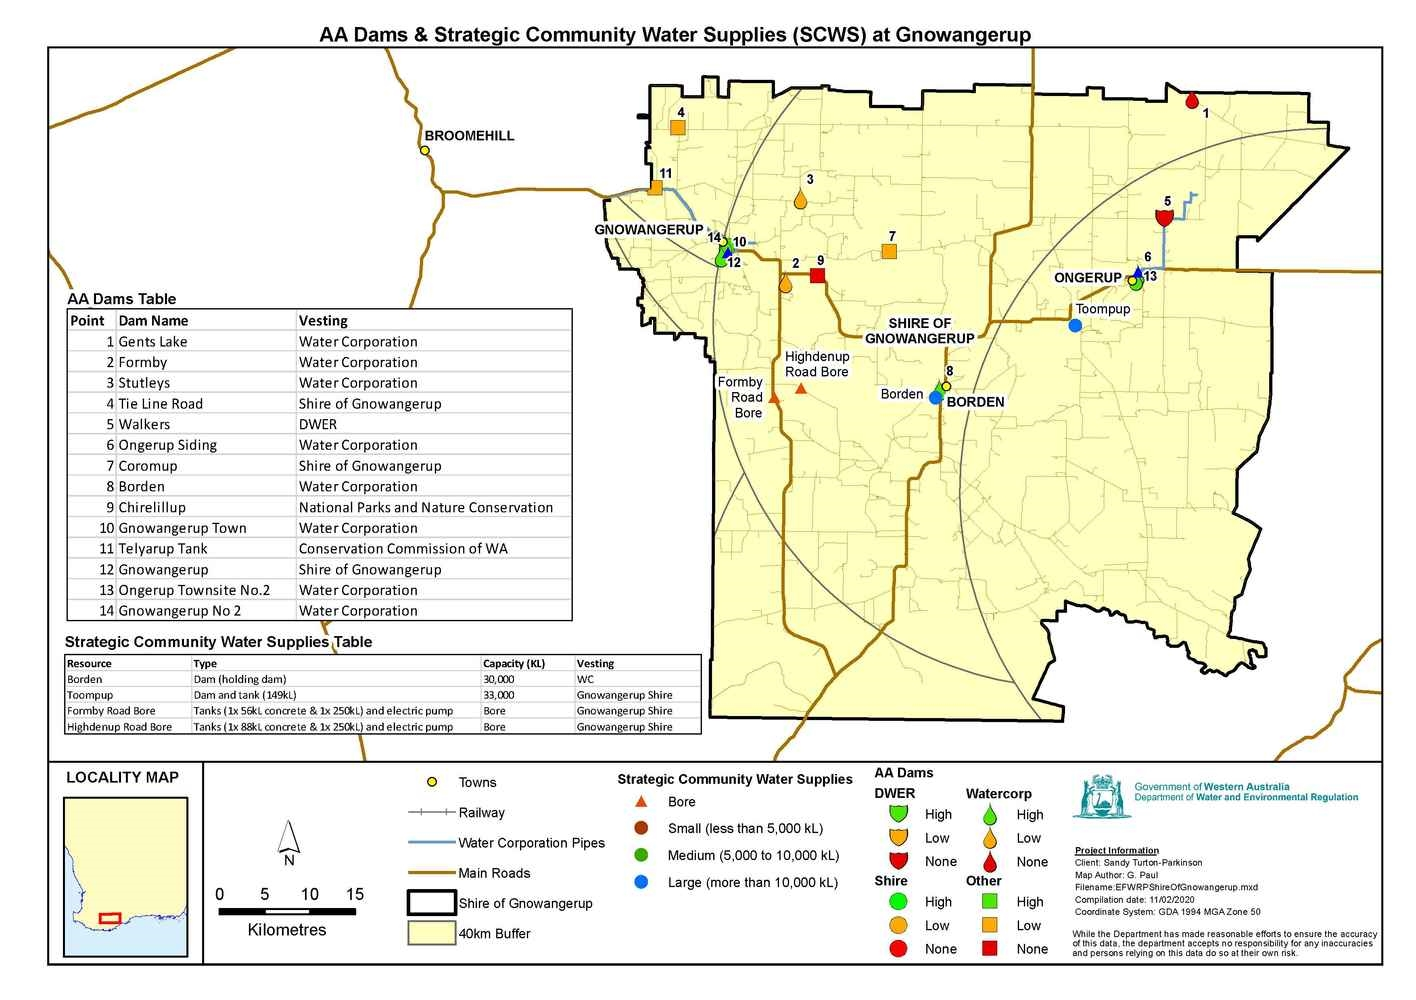 Gnowangerup Strategic Community Water Supply (SCWS) Shire Map